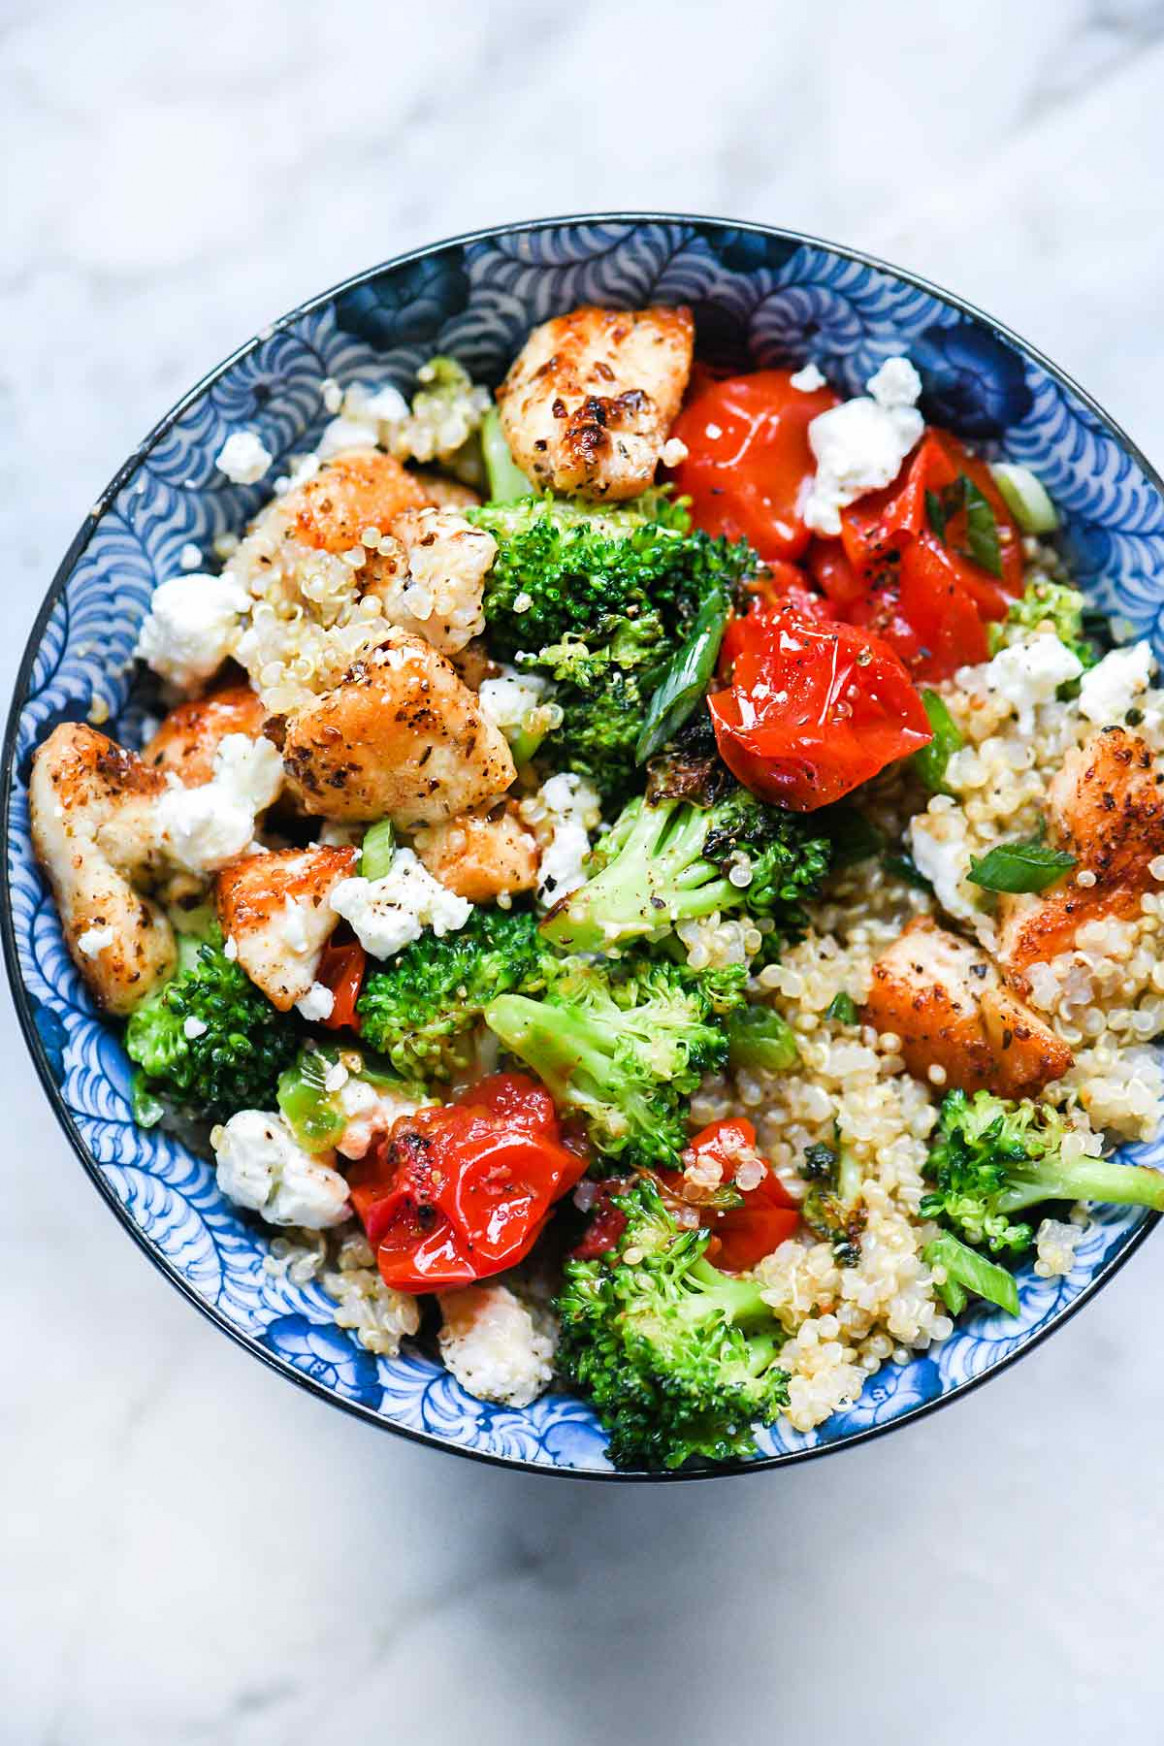 Mediterranean Chicken Quinoa Bowl with Broccoli and Tomato - chicken with vegetables recipes easy